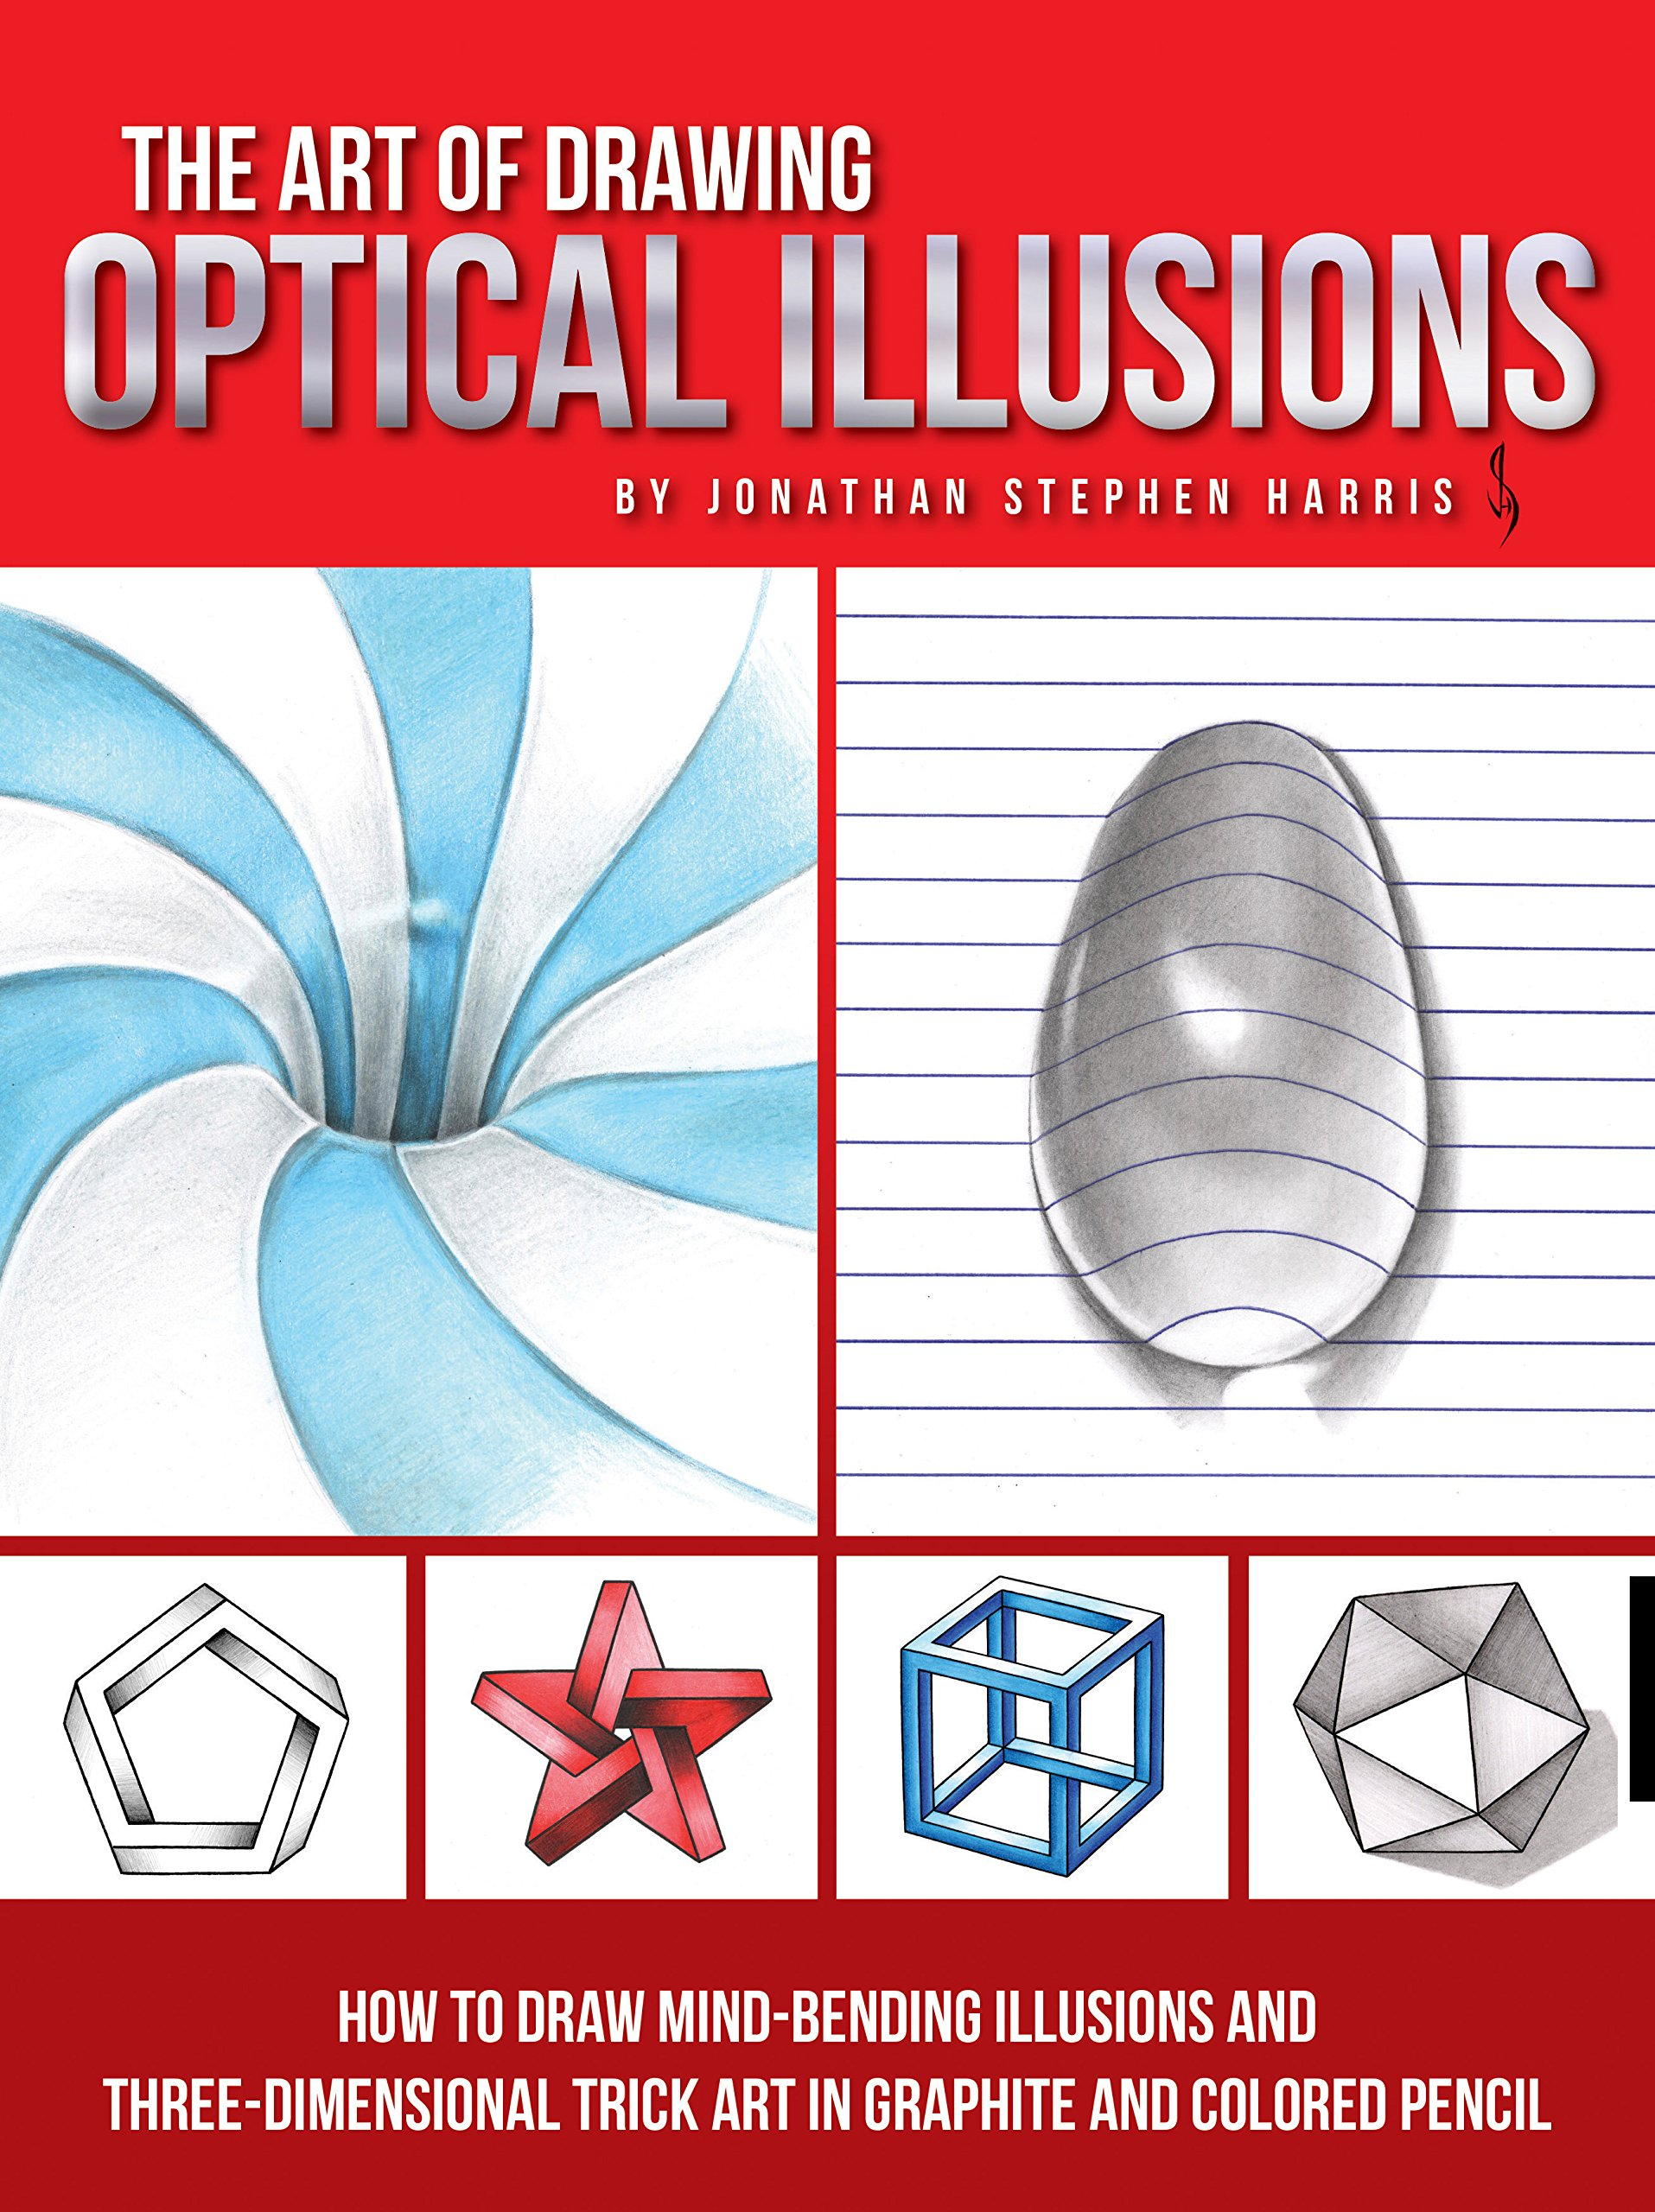 The Art Of Drawing Optical Illusions How To Draw Mind Bending Illusions And Three Dimensional Trick Art In Graphite And Colored Pencil Art Of Techniques Harris Jonathan Stephen 9781633223554 Amazon Com Books